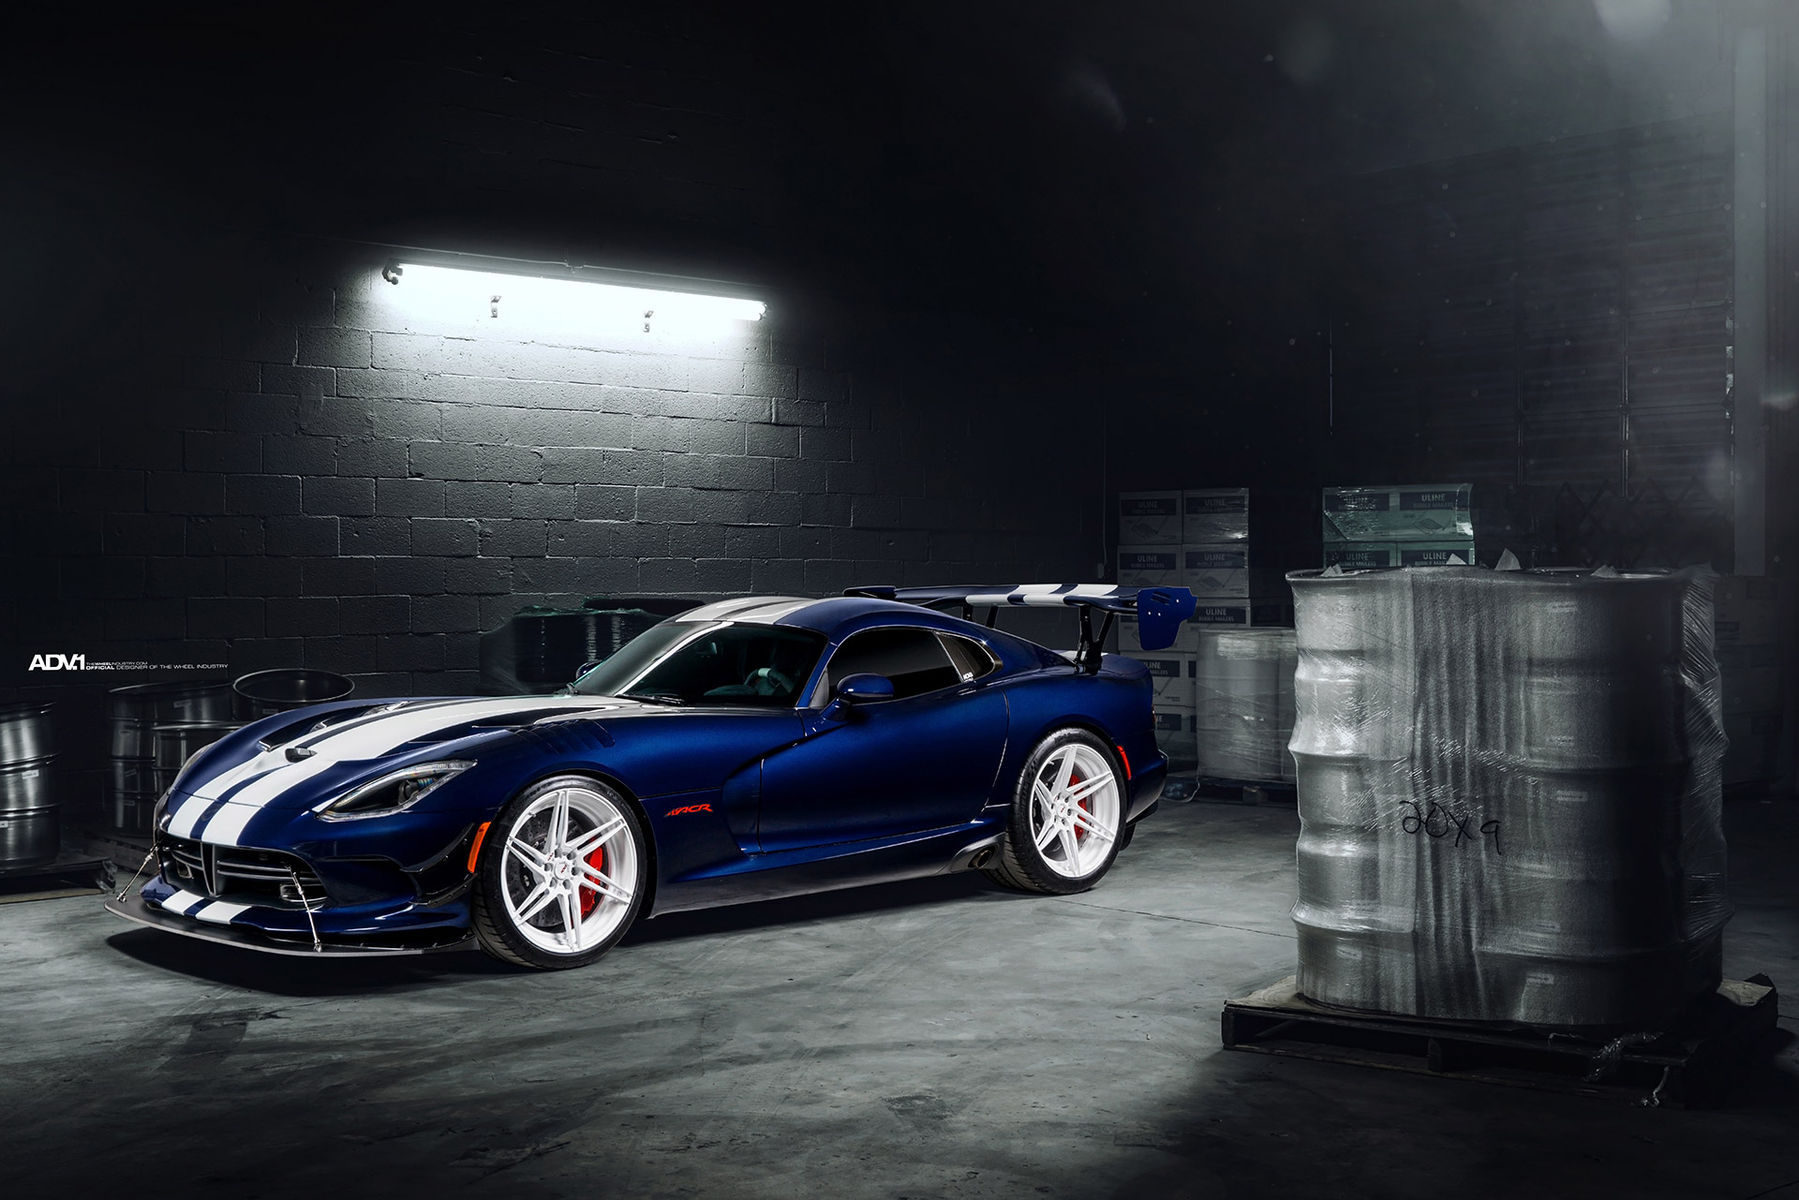 2016 Dodge Viper | ADV.1 Wheels Dodge Viper ACR